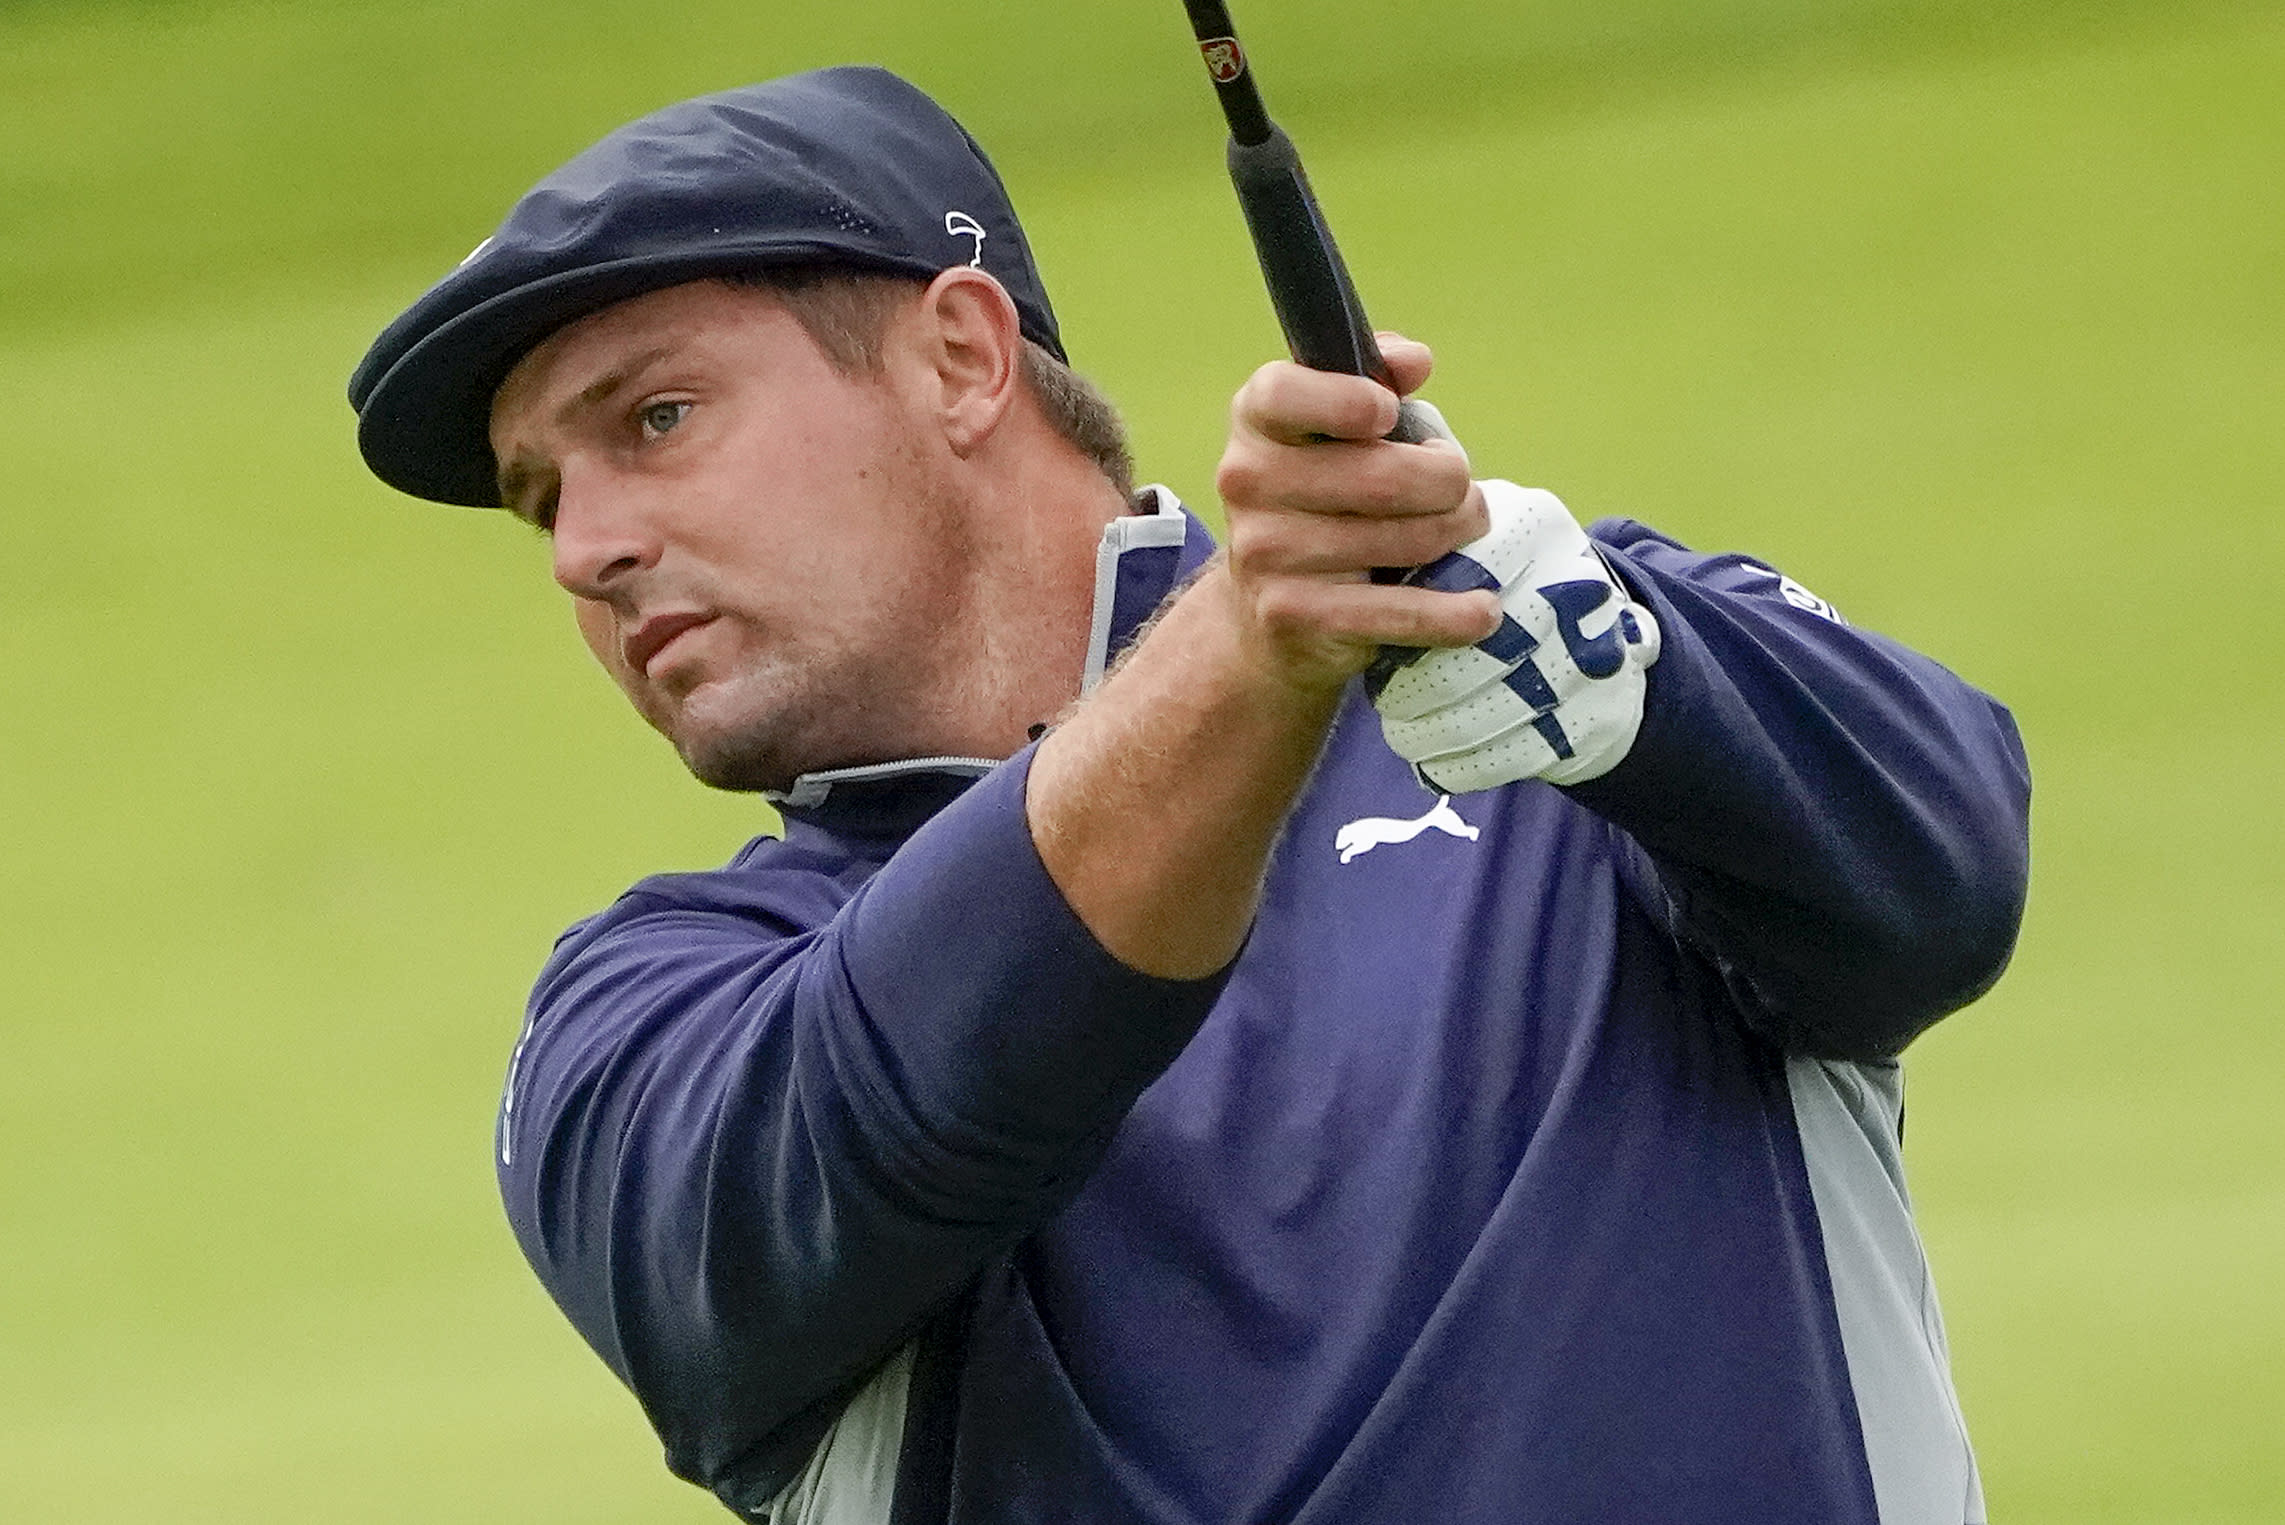 Bryson DeChambeau, of the United States, plays a shot off the 12th fairway during the second round of the US Open Golf Championship, Friday, Sept. 18, 2020, in Mamaroneck, N.Y. (AP Photo/Charles Krupa)